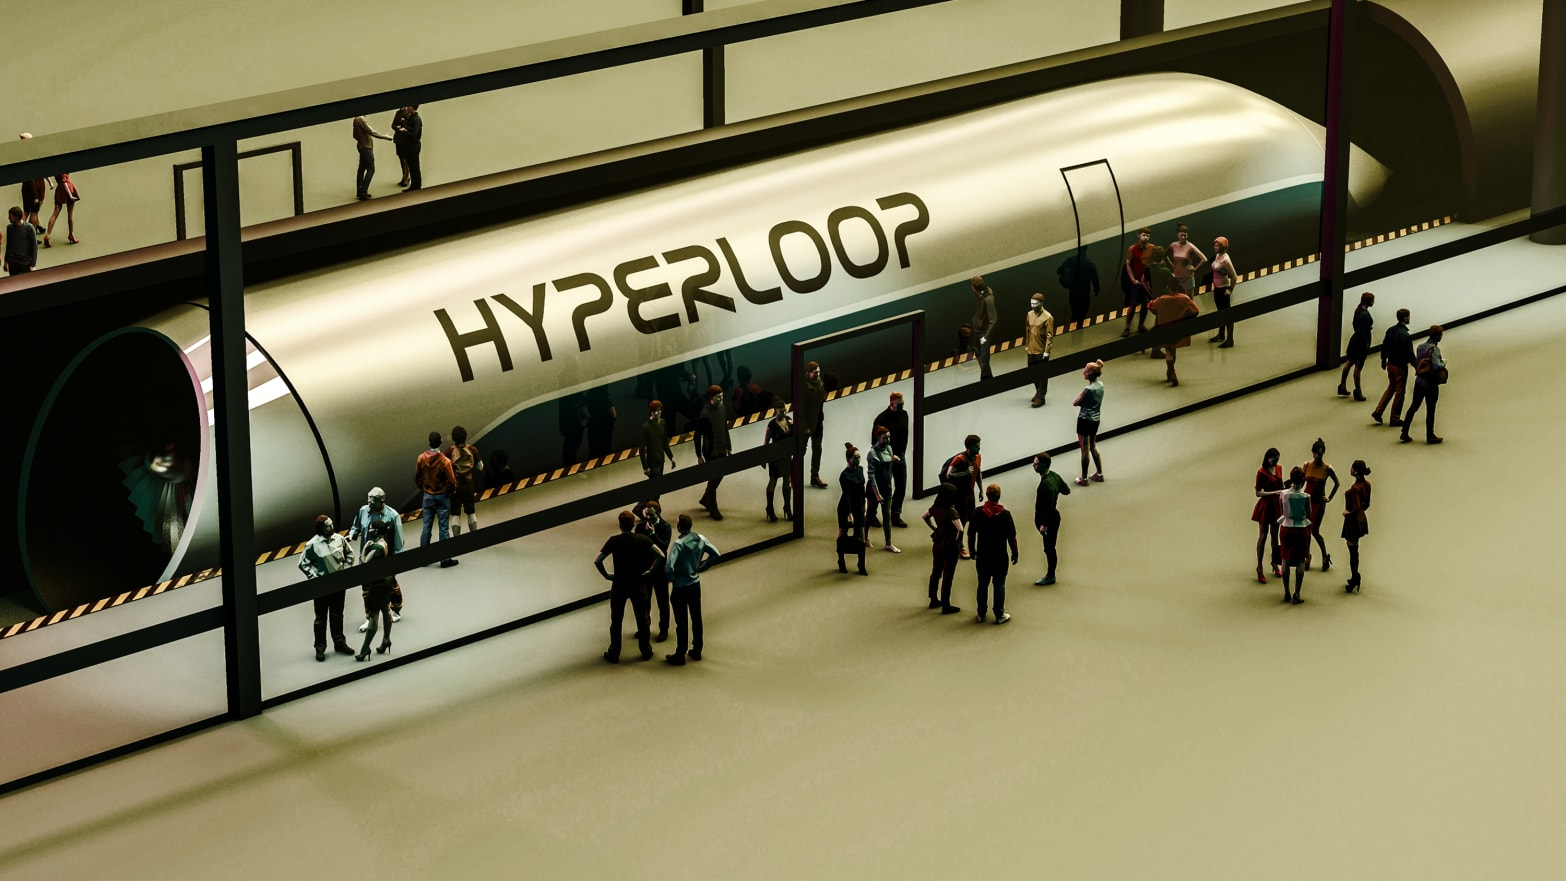 Elon Musk Hyperloop Dreams Slam Into Cold Hard Reality